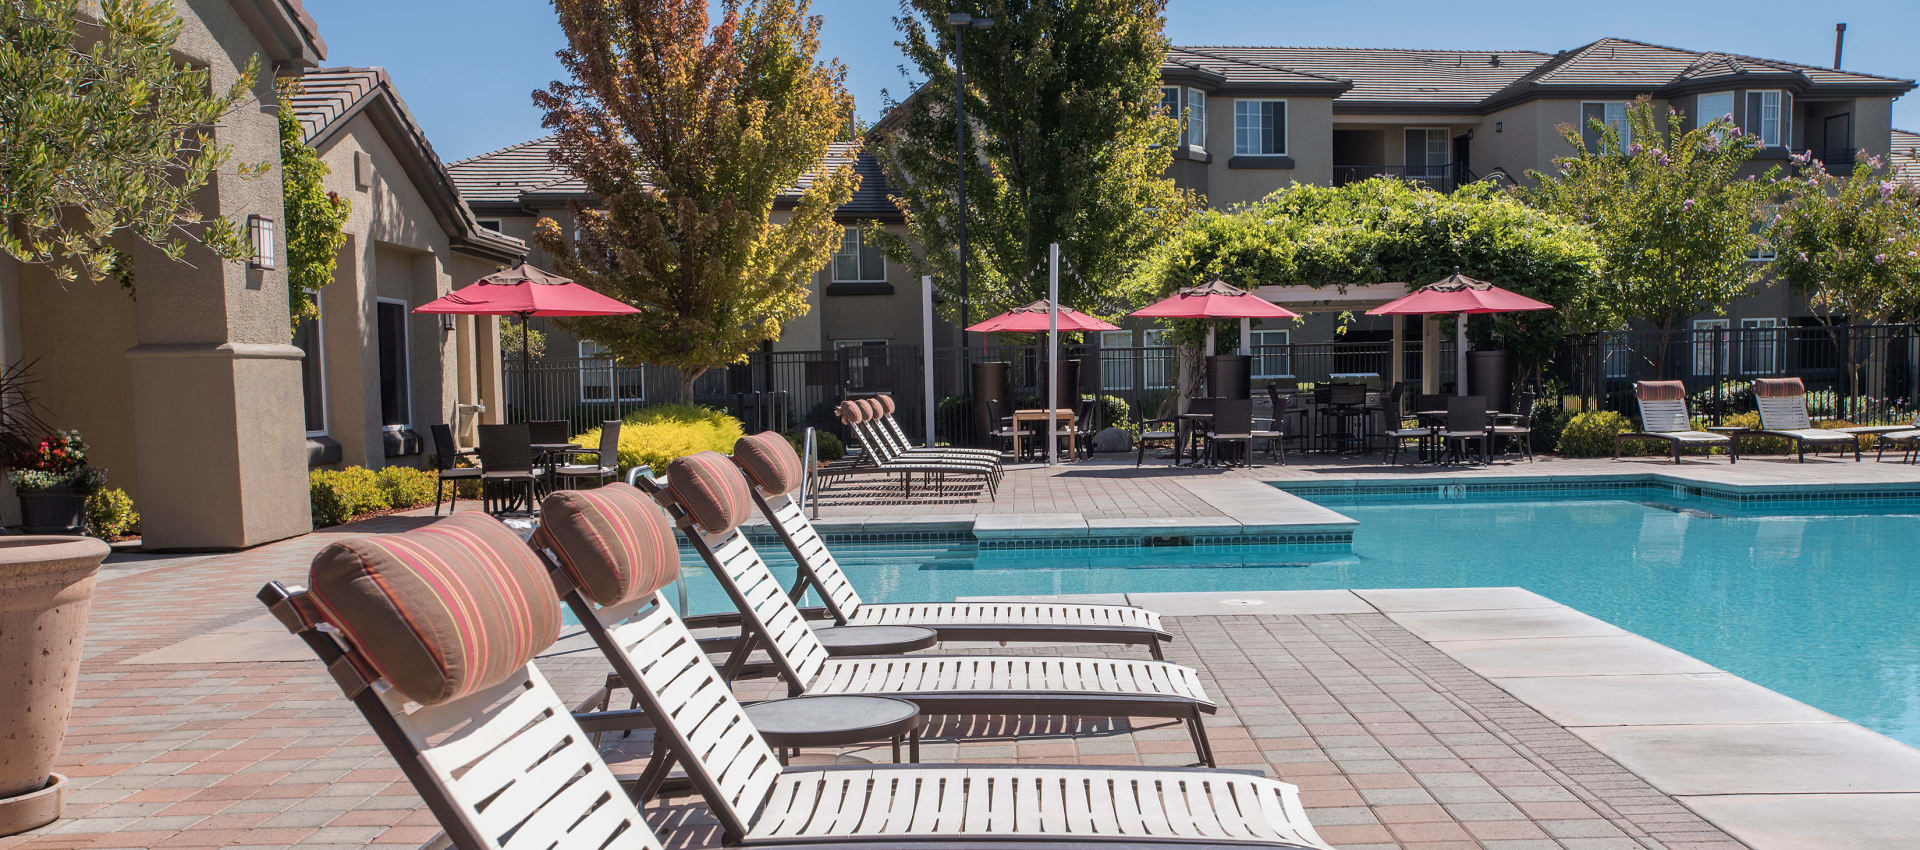 State-of-the-art swimming pool and lounge area at The Artisan Apartment Homes in Sacramento, California